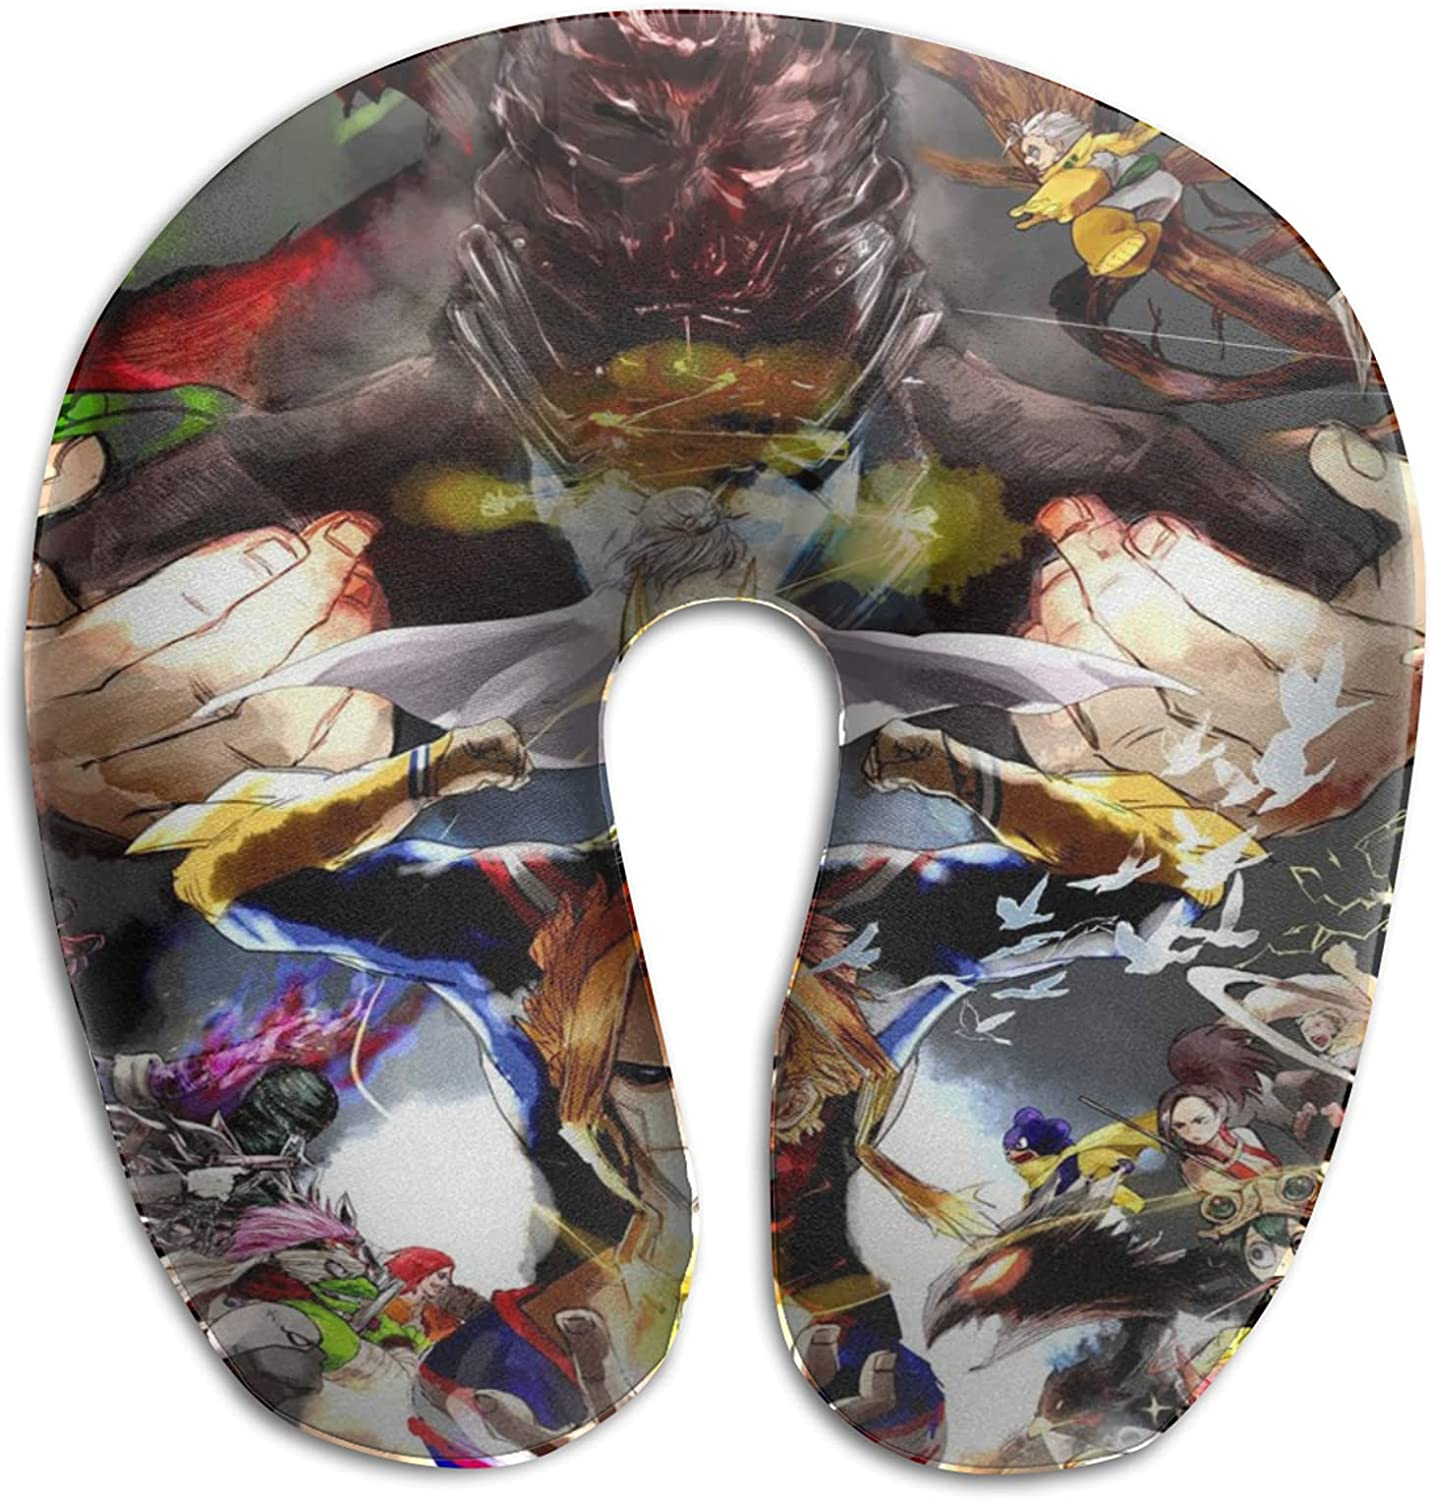 My Super-cheap Hero Academia Neck Cervical 25% OFF Memory for Pain Pillow Soft